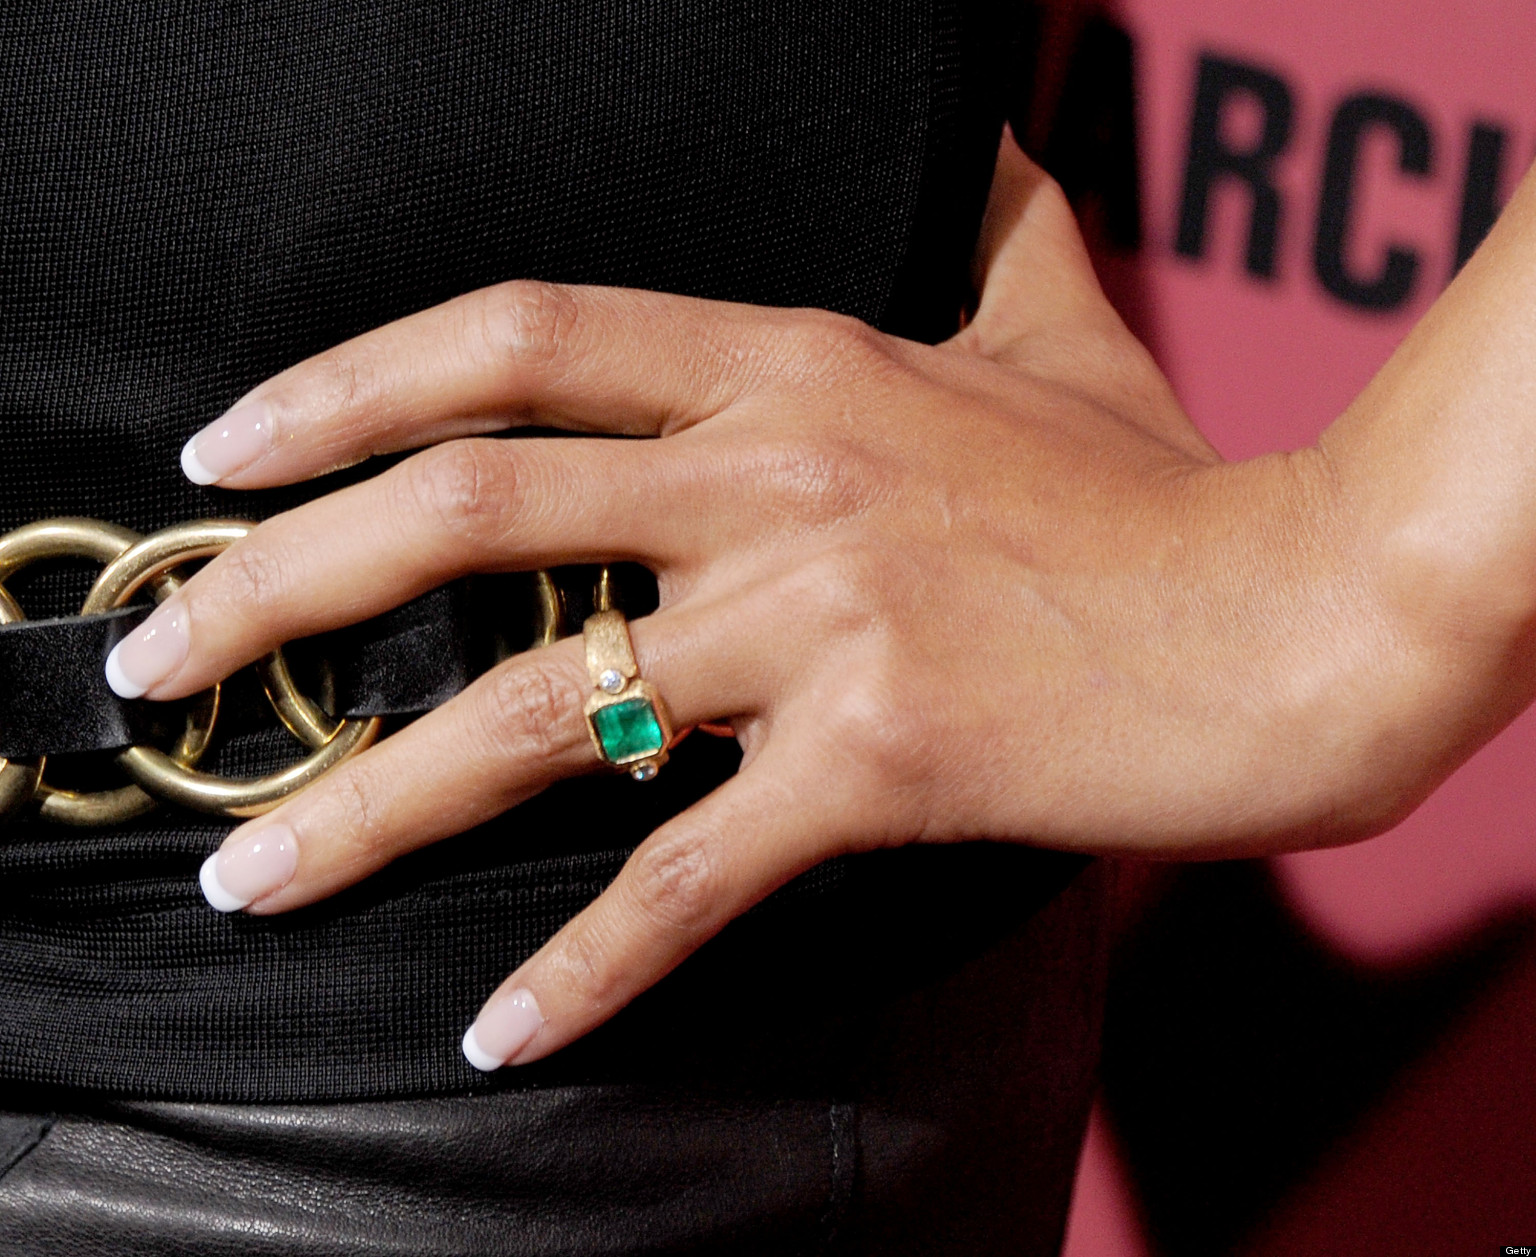 celebrity engagement ring n wonder woman wedding ring Celebrity Engagement Rings Our Favorite Sparkly Indie Stunners PHOTOS HuffPost